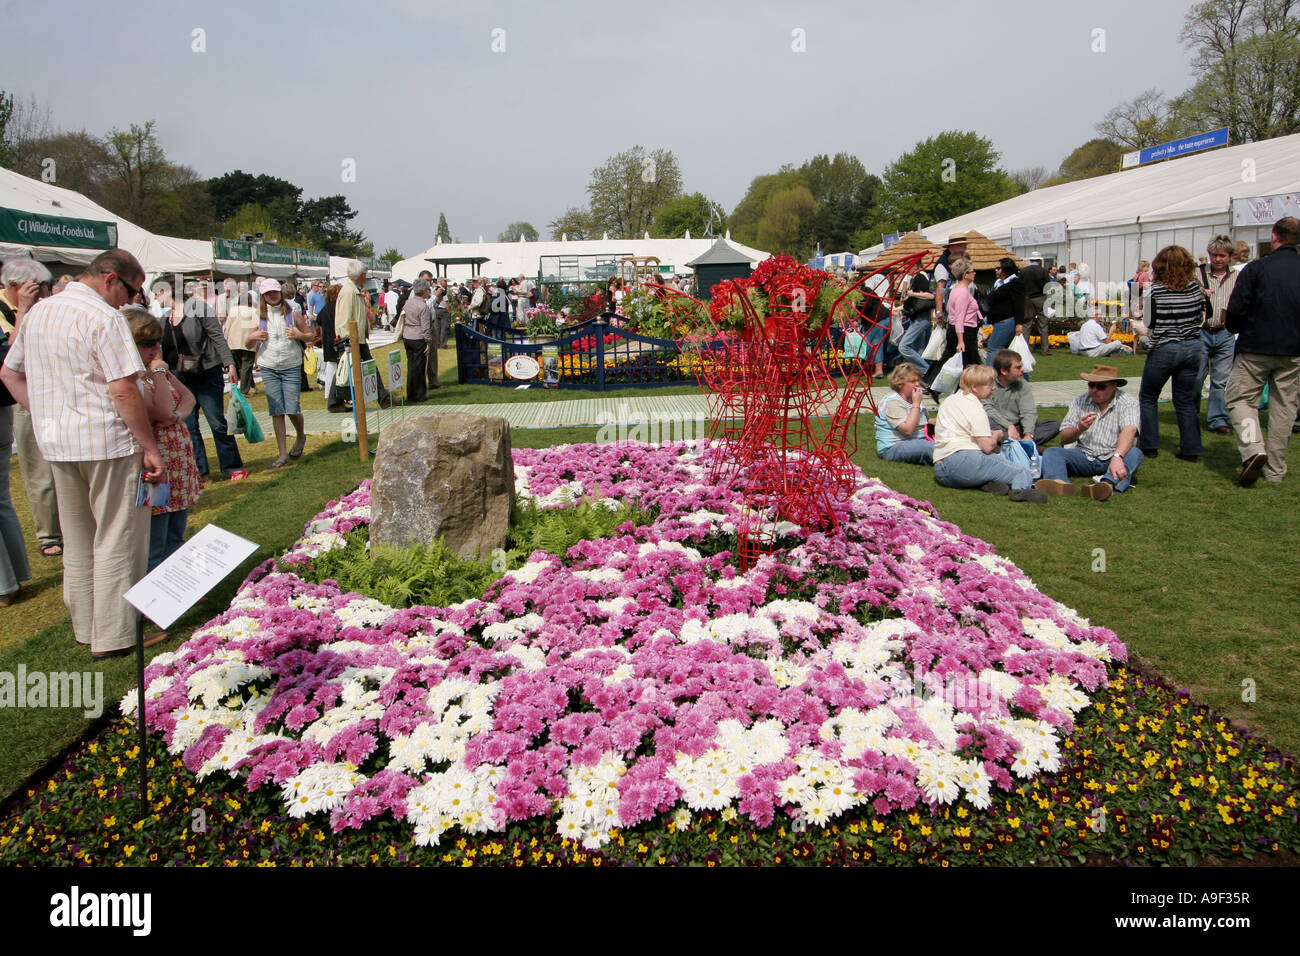 Royal horticultural society spring flower show bute park - Royal flower show ...